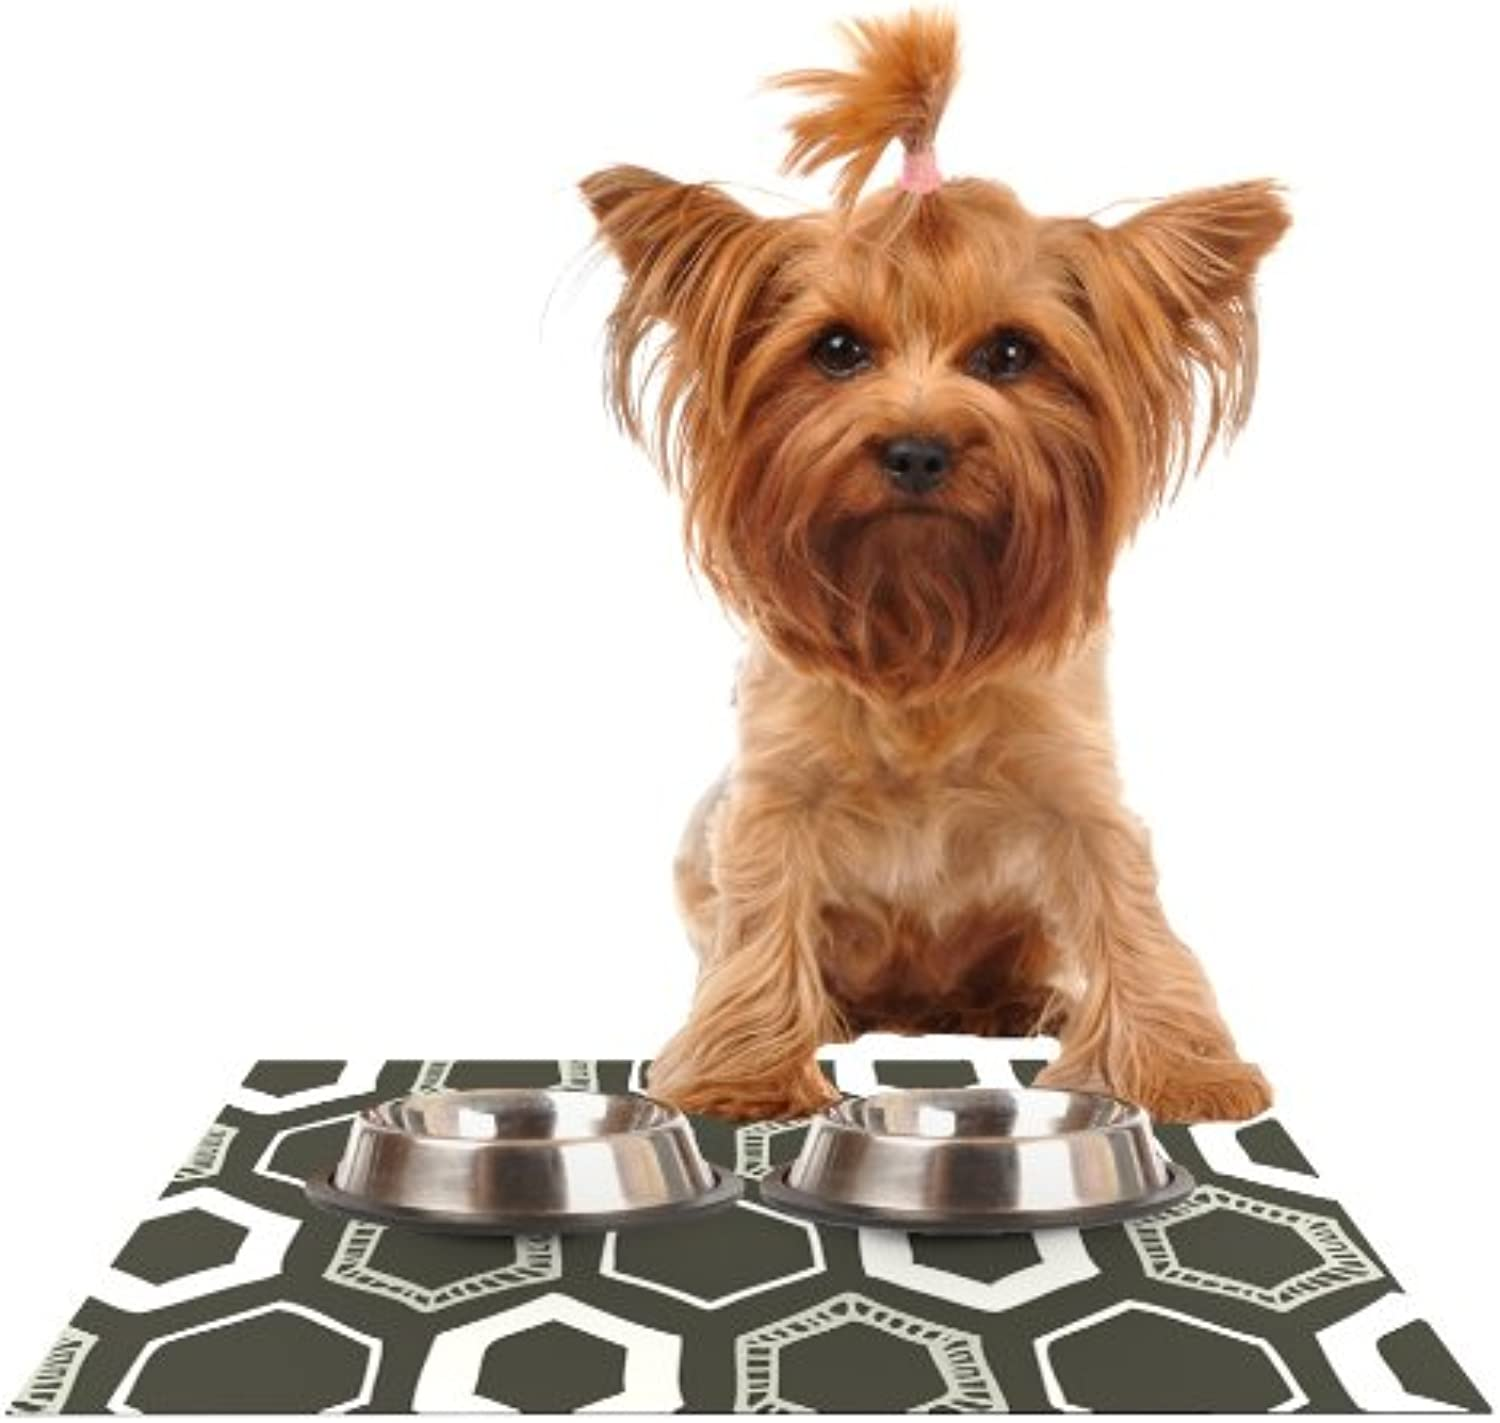 KESS InHouse Laurie Baars Hexy Brown Geometric Feeding Mat for Pet Bowl, 18 by 13Inch